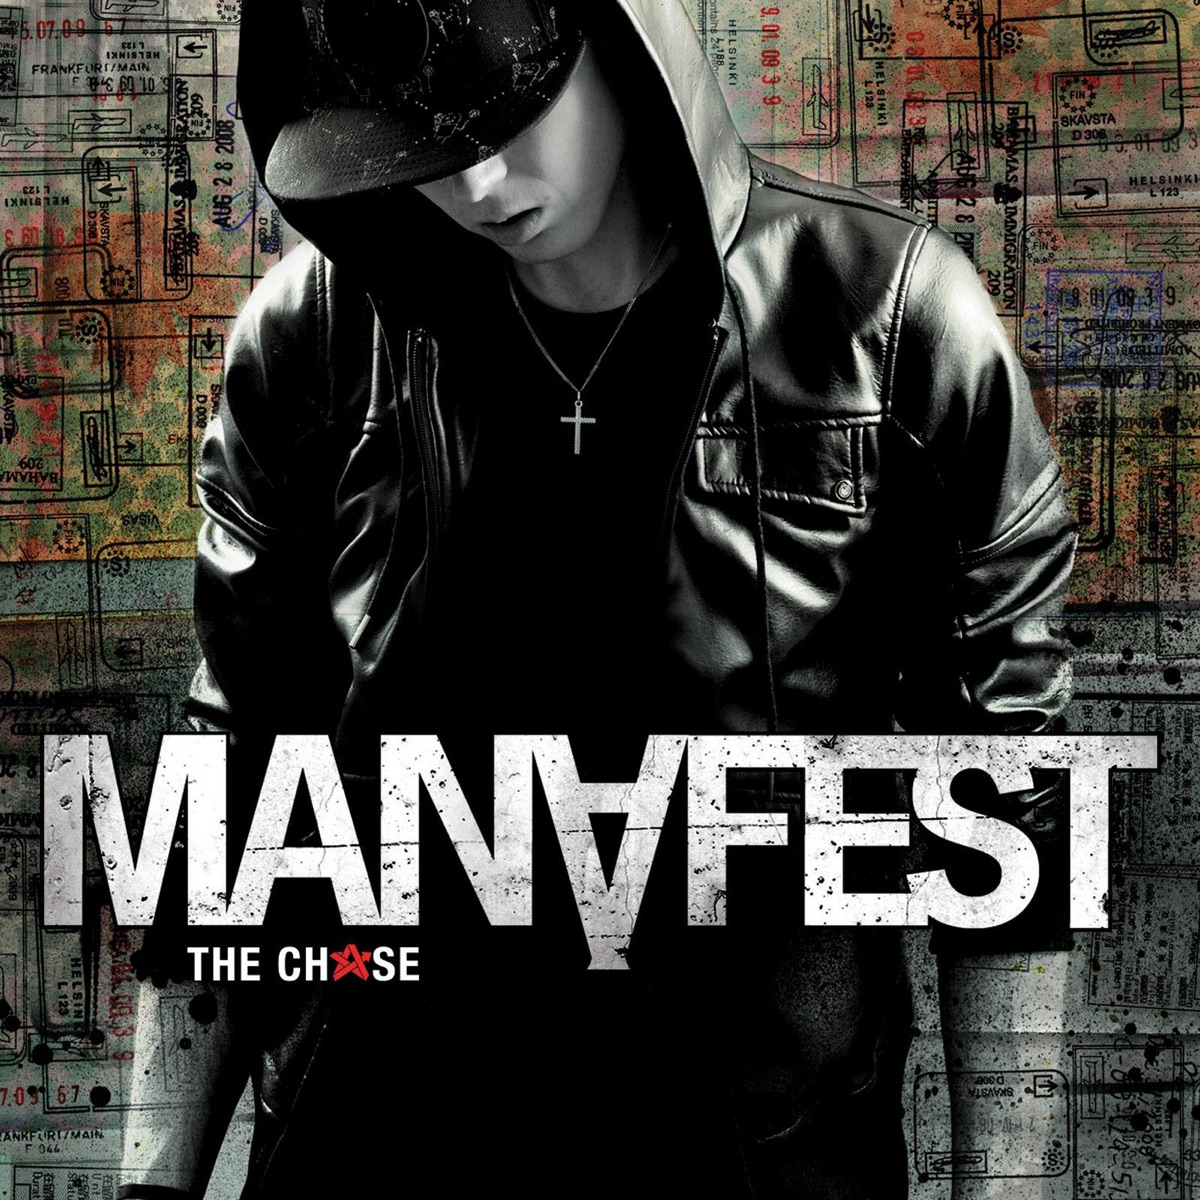 The Chase Manafest CD cover